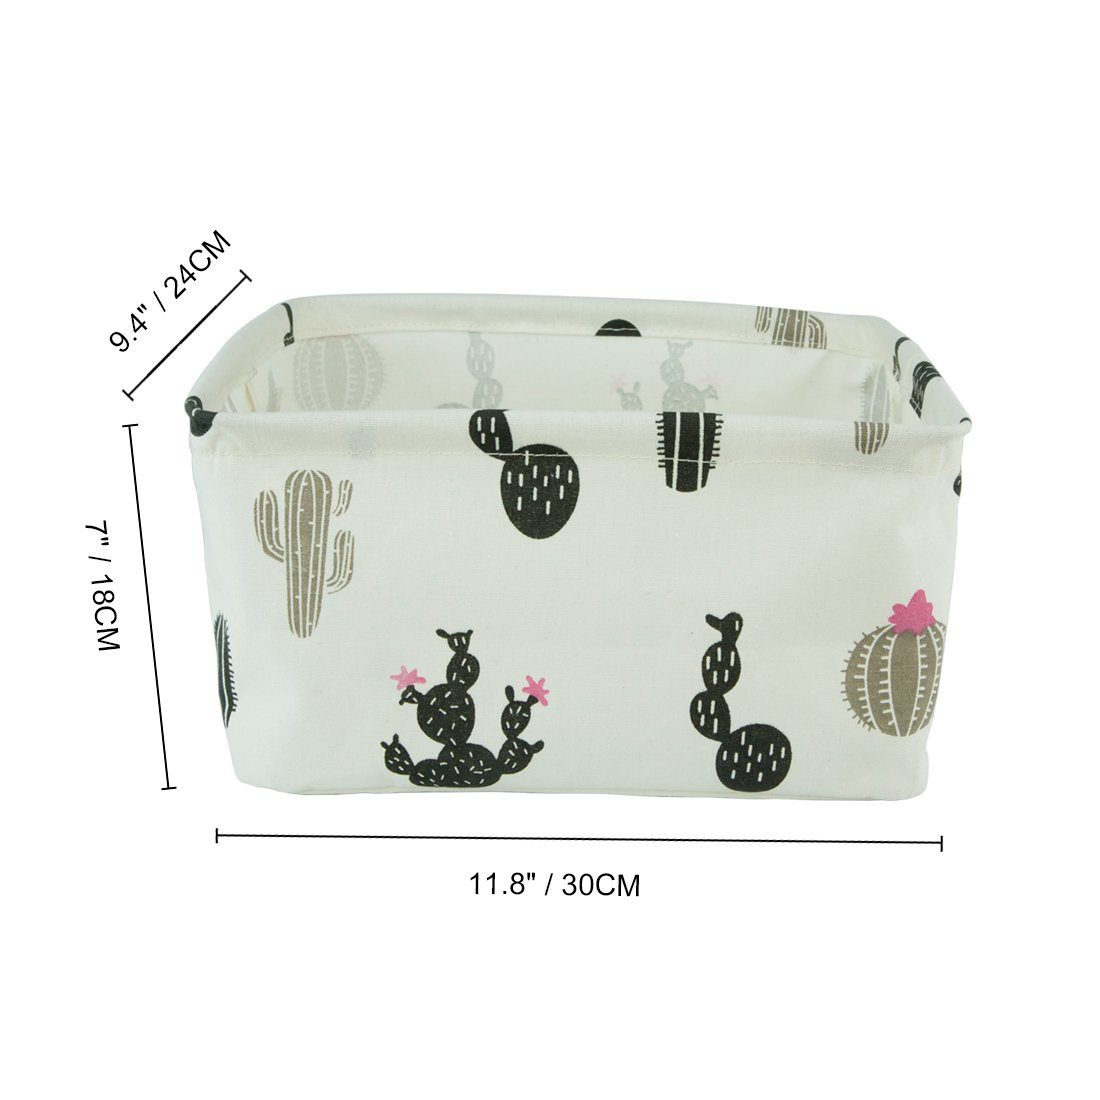 Collapsible and Convenient for Nursery and Babies Room Black Cactus Homiak Canvas Fabric Foldable Organizer Storage Basket with Handle